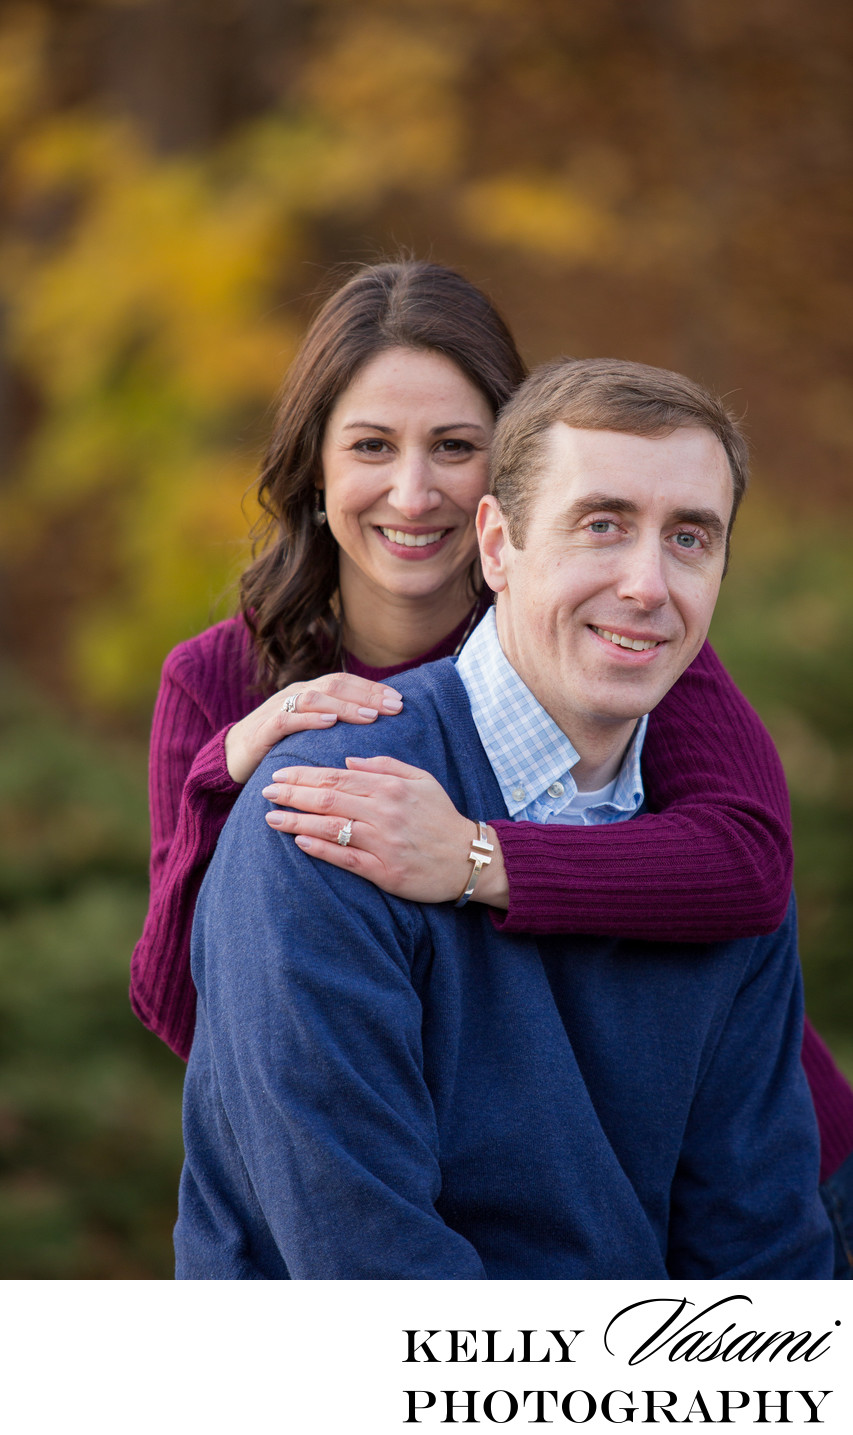 Colorful Autumn Engagement Session in Connecticut